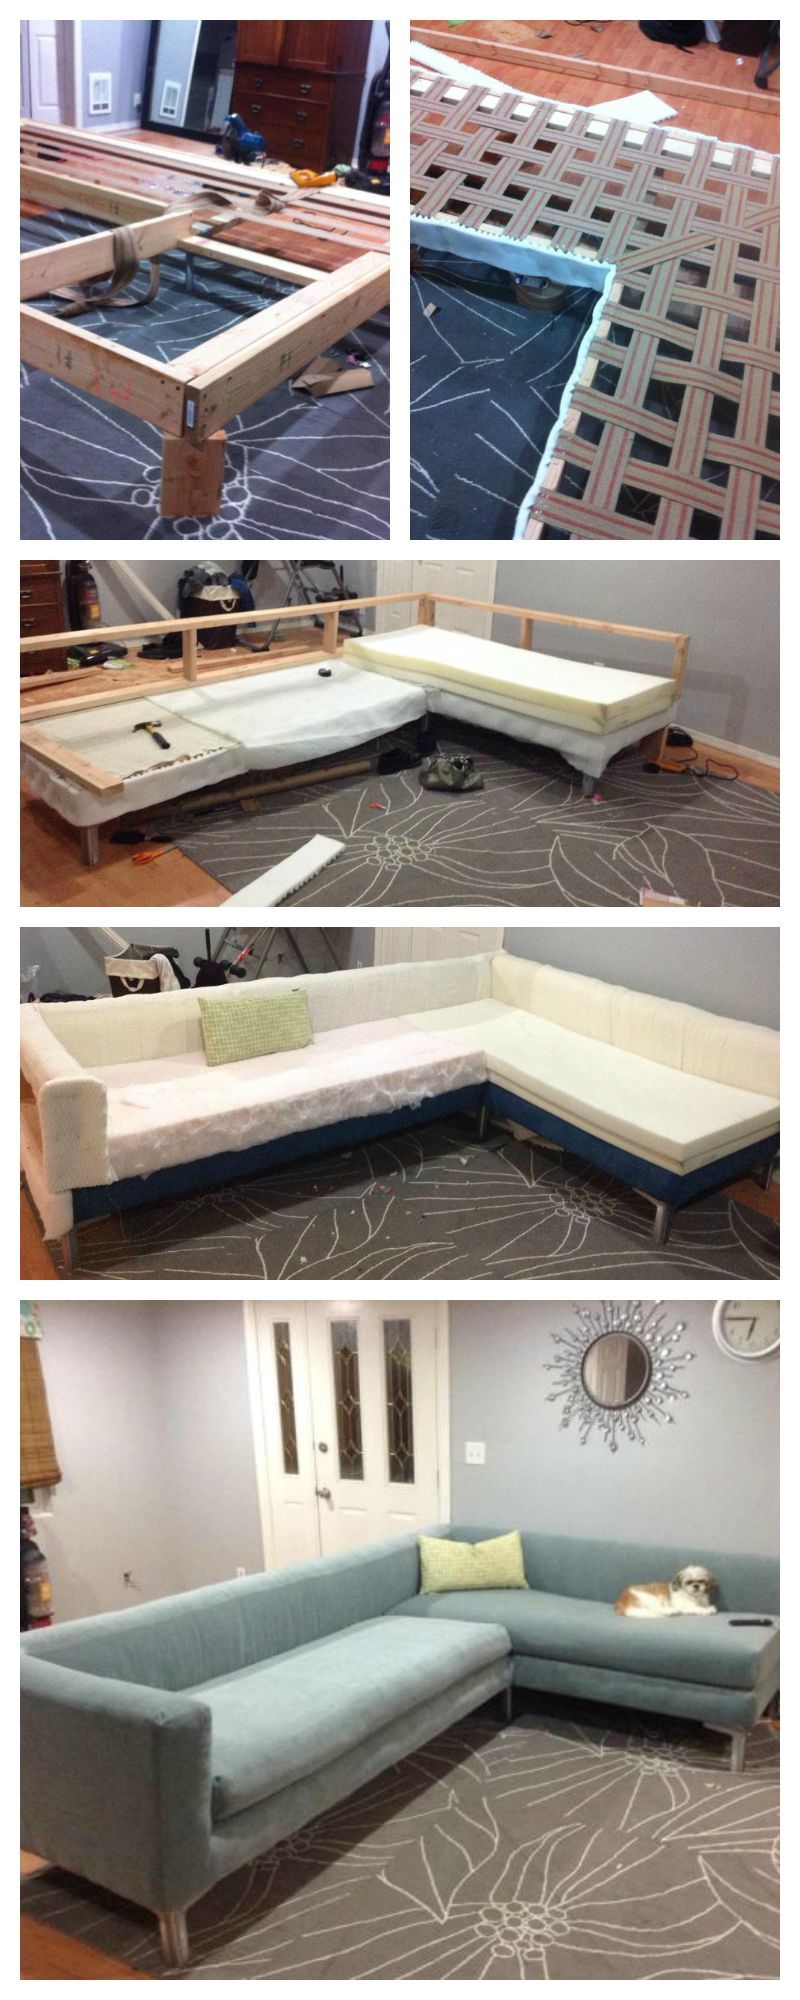 Build Your Own Sofa Or Couch Easy Diy 2x4 Frame Modern Style Blue Pretty Sectional How To Tutorial Upholster Cushion Ana White Com